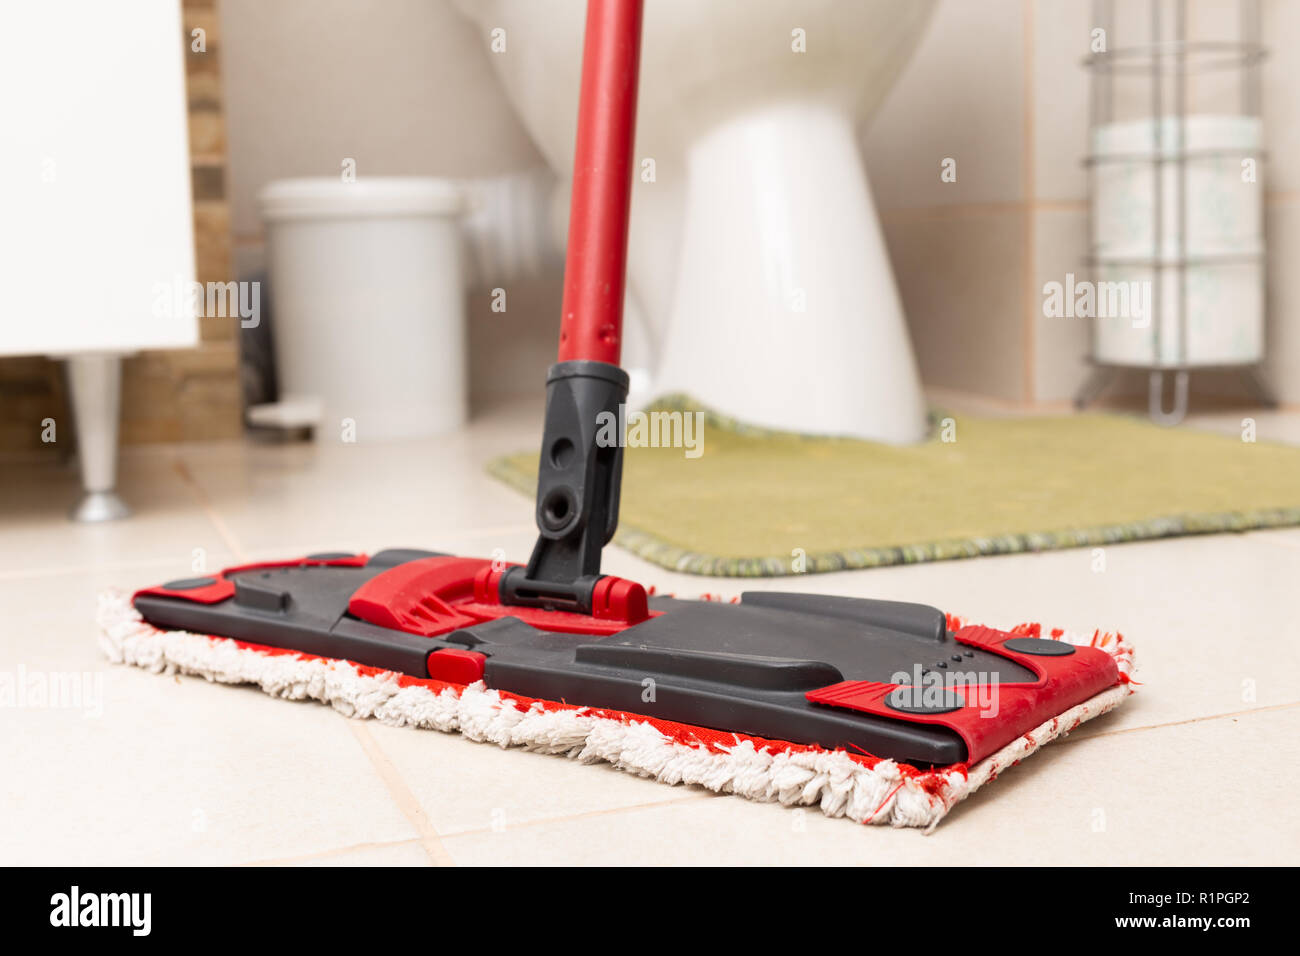 Microfiber mop on white bathroom floor tiles as cleaning concept - Stock Image